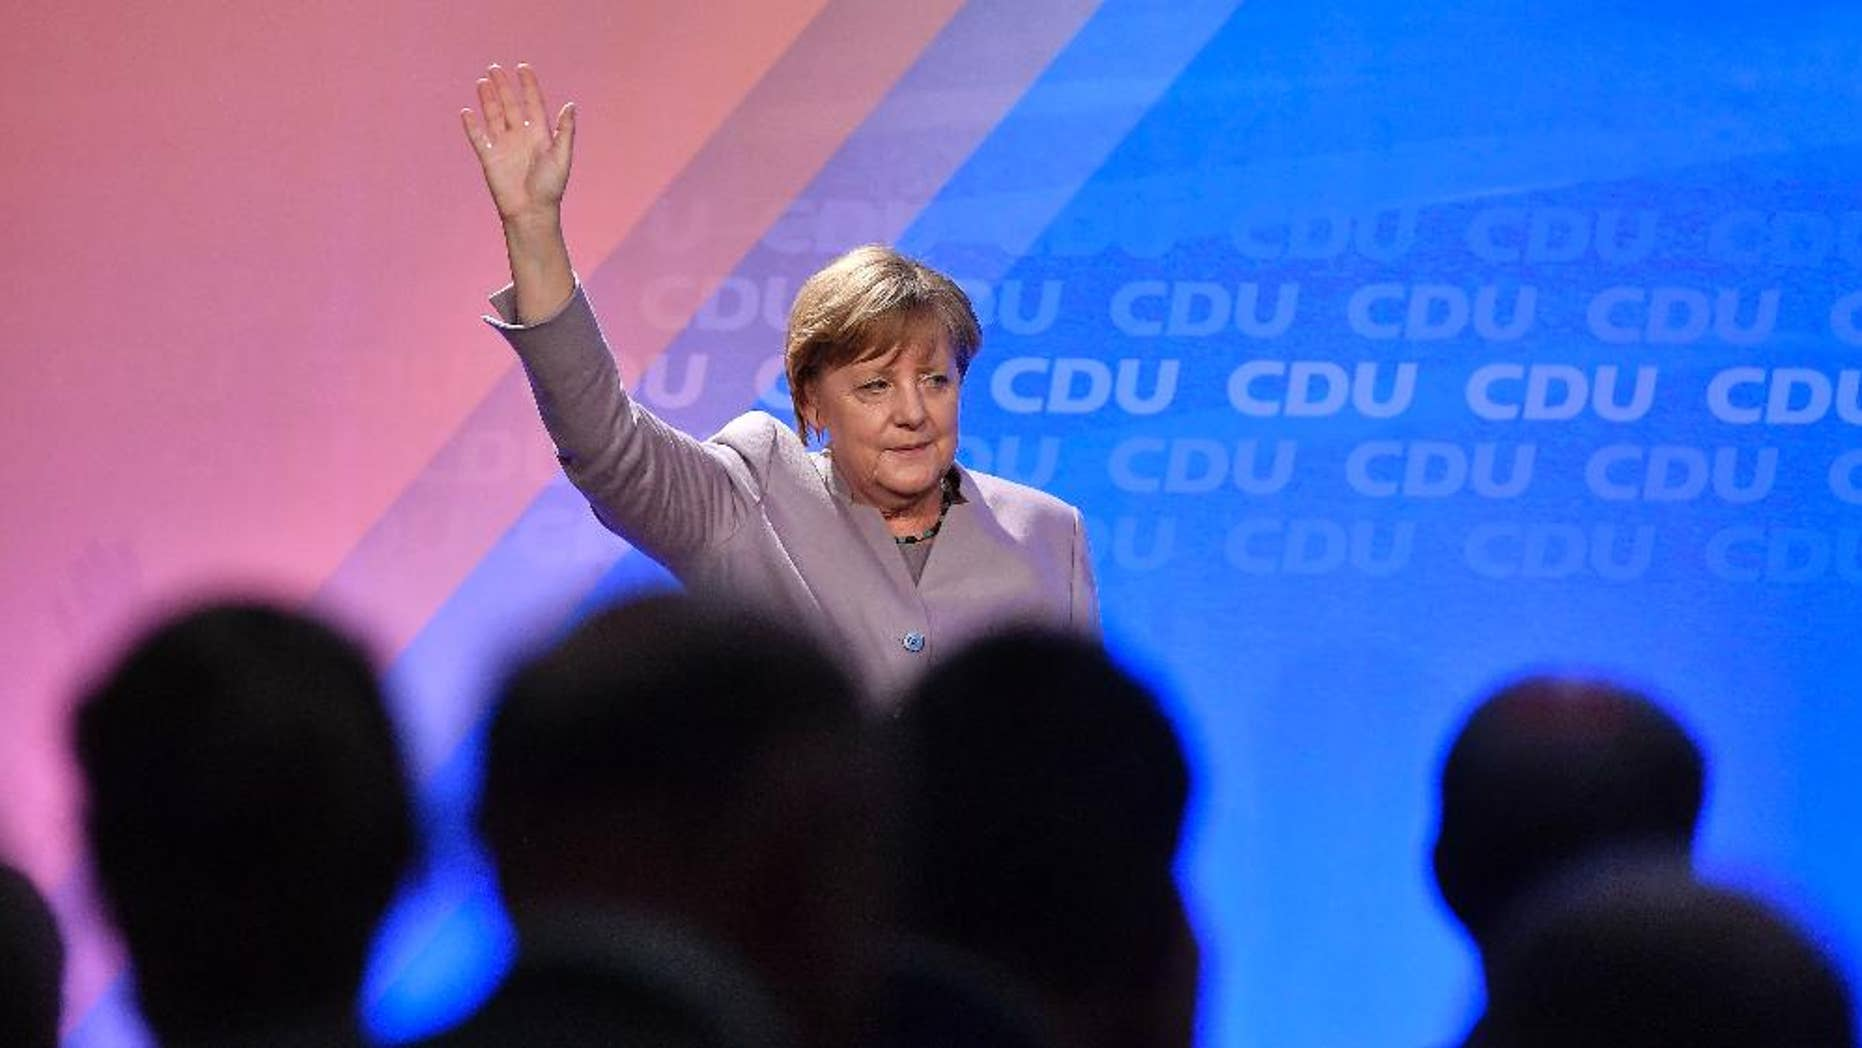 German chancellor Angela Merkel waves to supporters during an election campaign in Oelde, Germany, for the upcoming state elections in North Rhine-Westphalia, Thursday, April 27, 2017. Germany's most populated province elects a new parliament on May 14. (AP Photo/Martin Meissner)